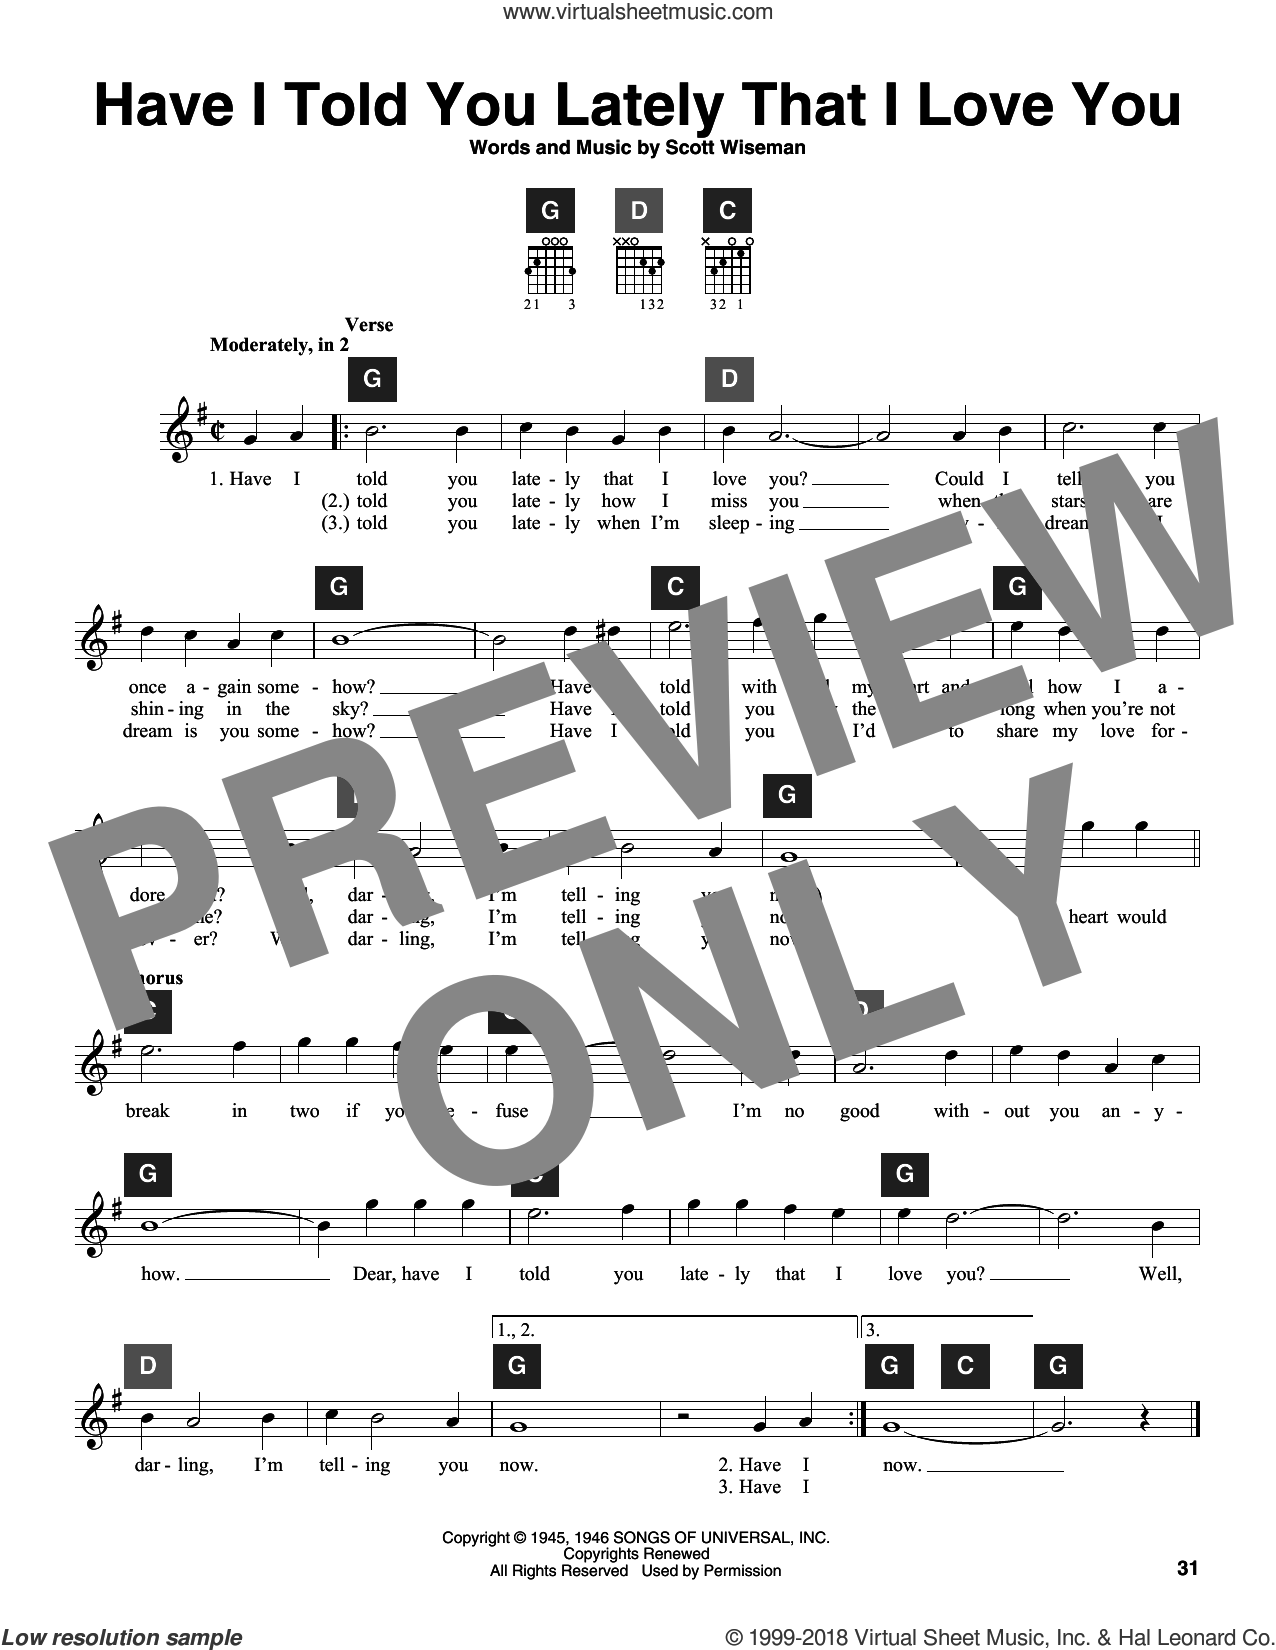 Have I Told You Lately That I Love You sheet music for guitar solo (ChordBuddy system) by Scott Wiseman, Gene Autrey, Kitty Wells & Red Foley, Ricky Nelson and Travis Perry, intermediate guitar (ChordBuddy system)